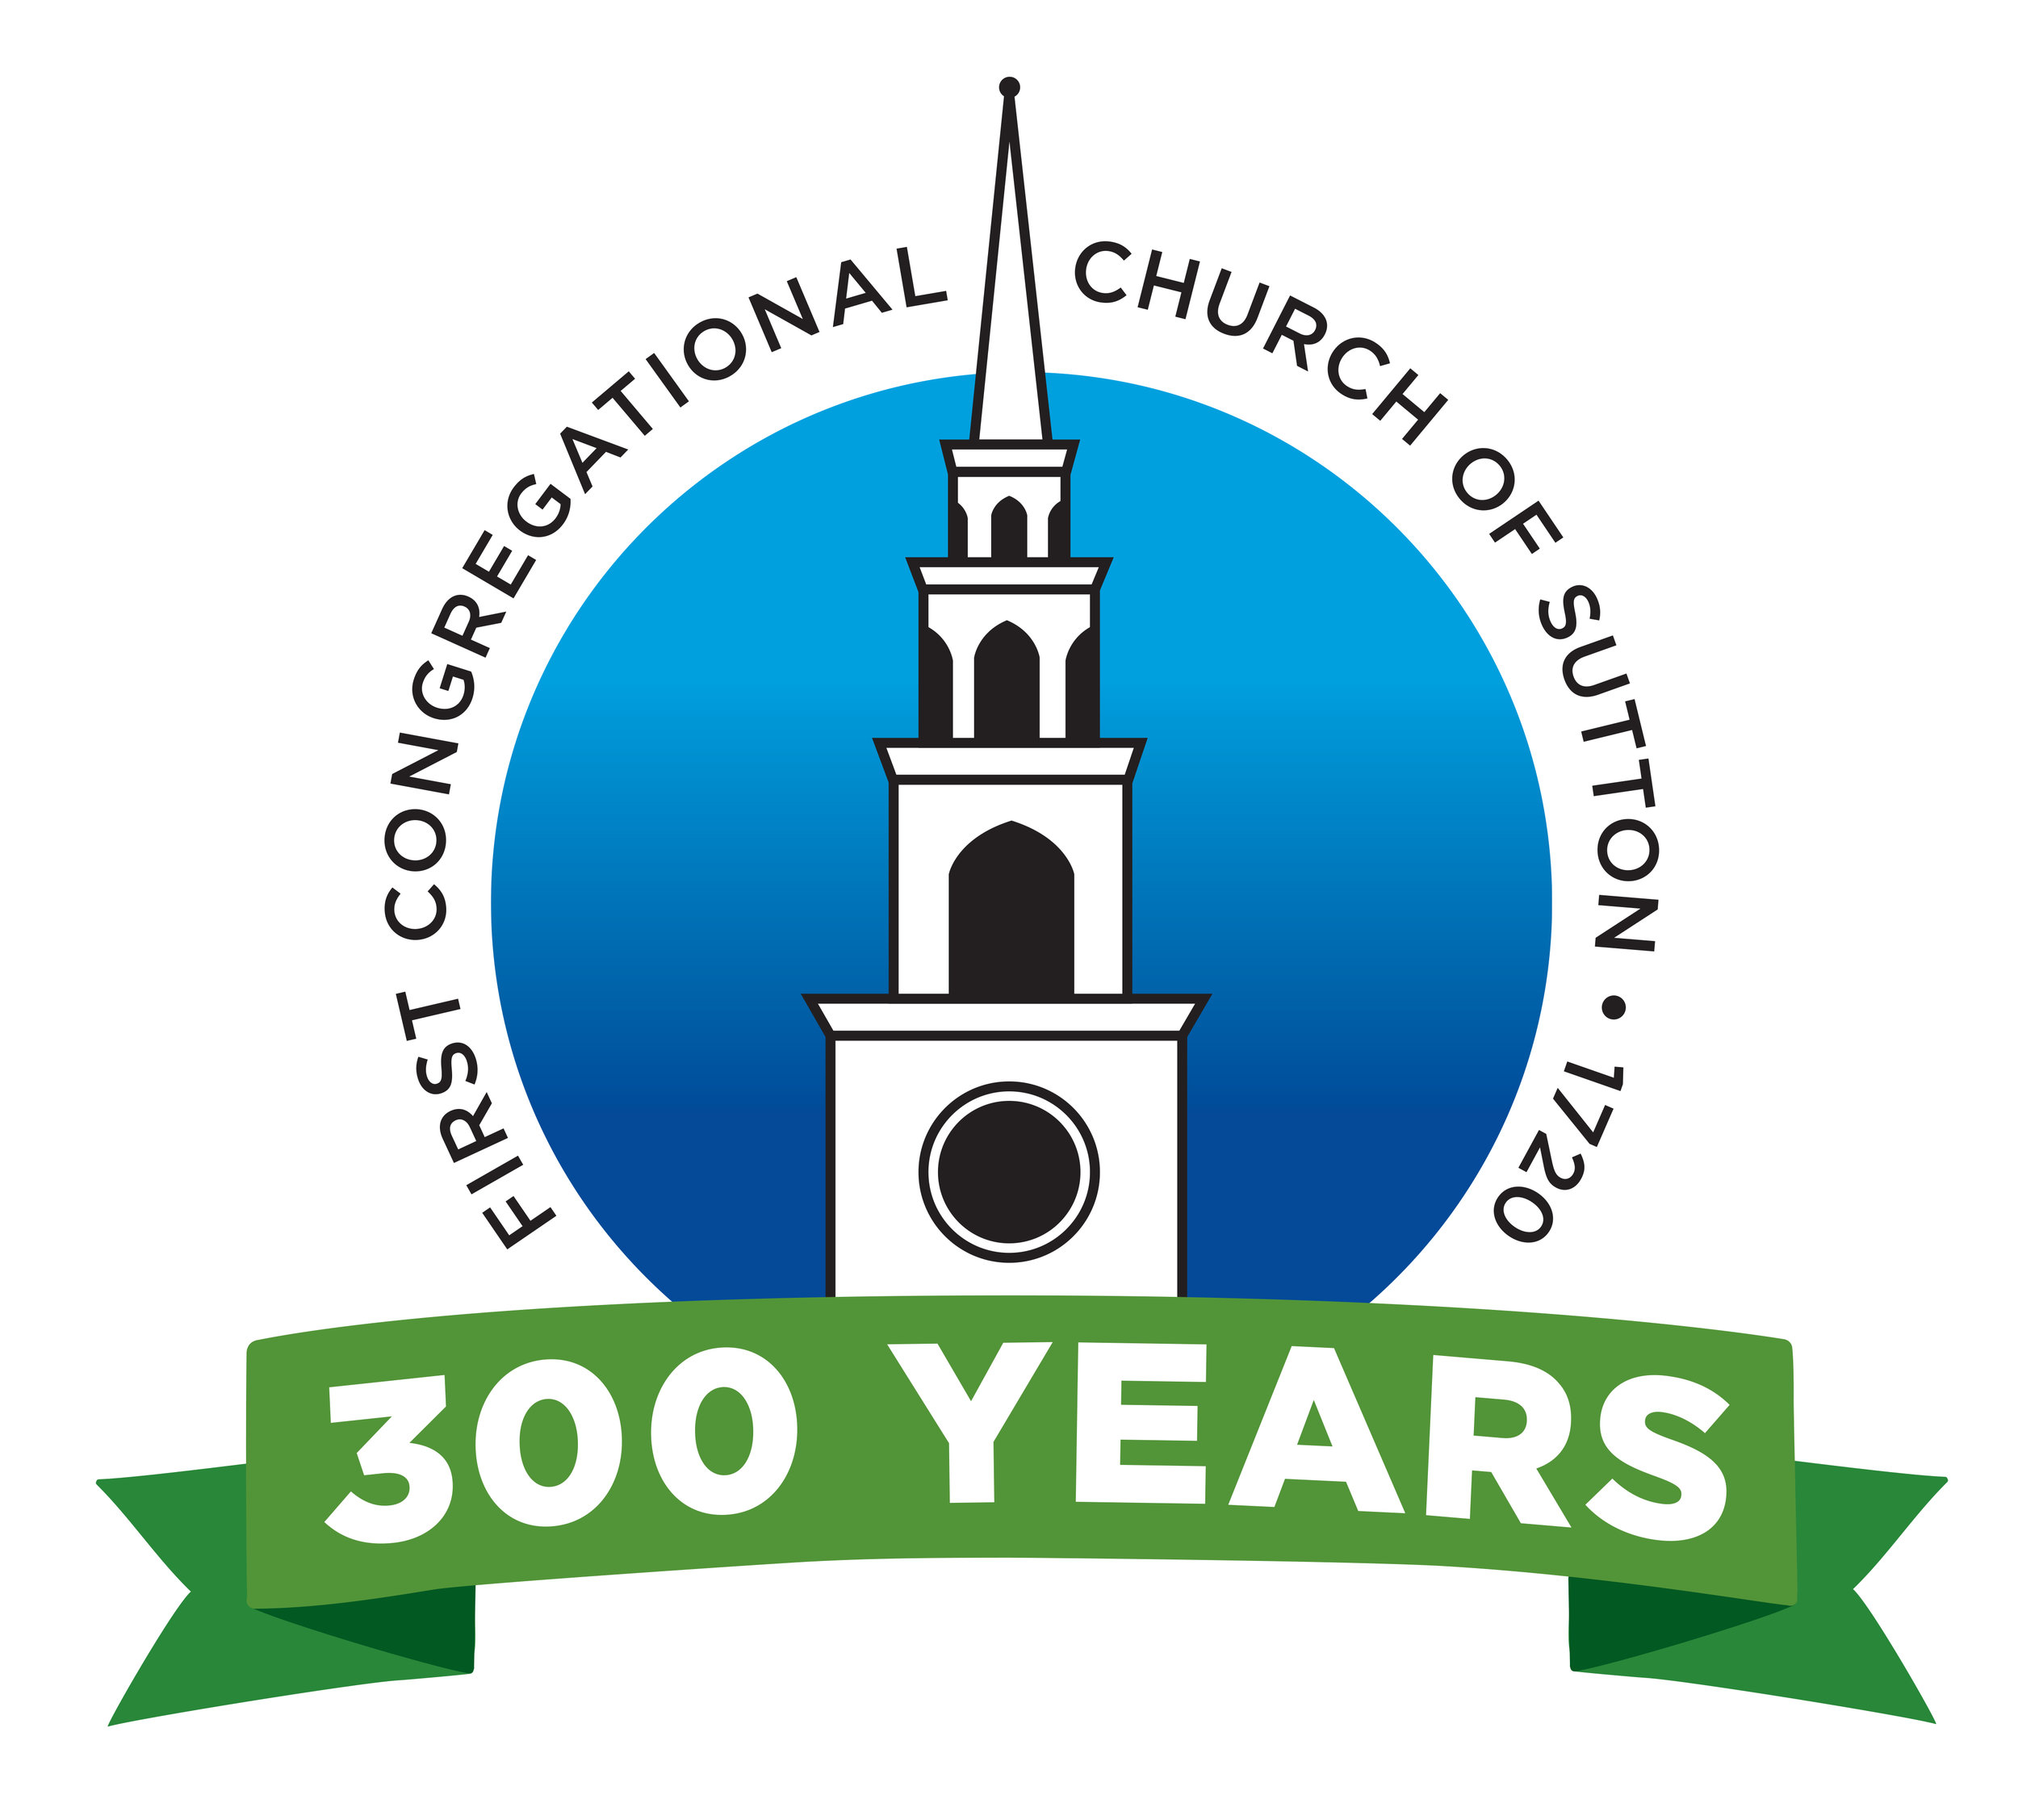 CELEBRATE OUR 300th! ORDER YOUR T-SHIRTS TODAY! - GET THEM IN MANY COLORS!!FCCS 300th Celebration Anniversary Custom Adult Ultra Cotton T-Shirt. BUY THEM HERE!